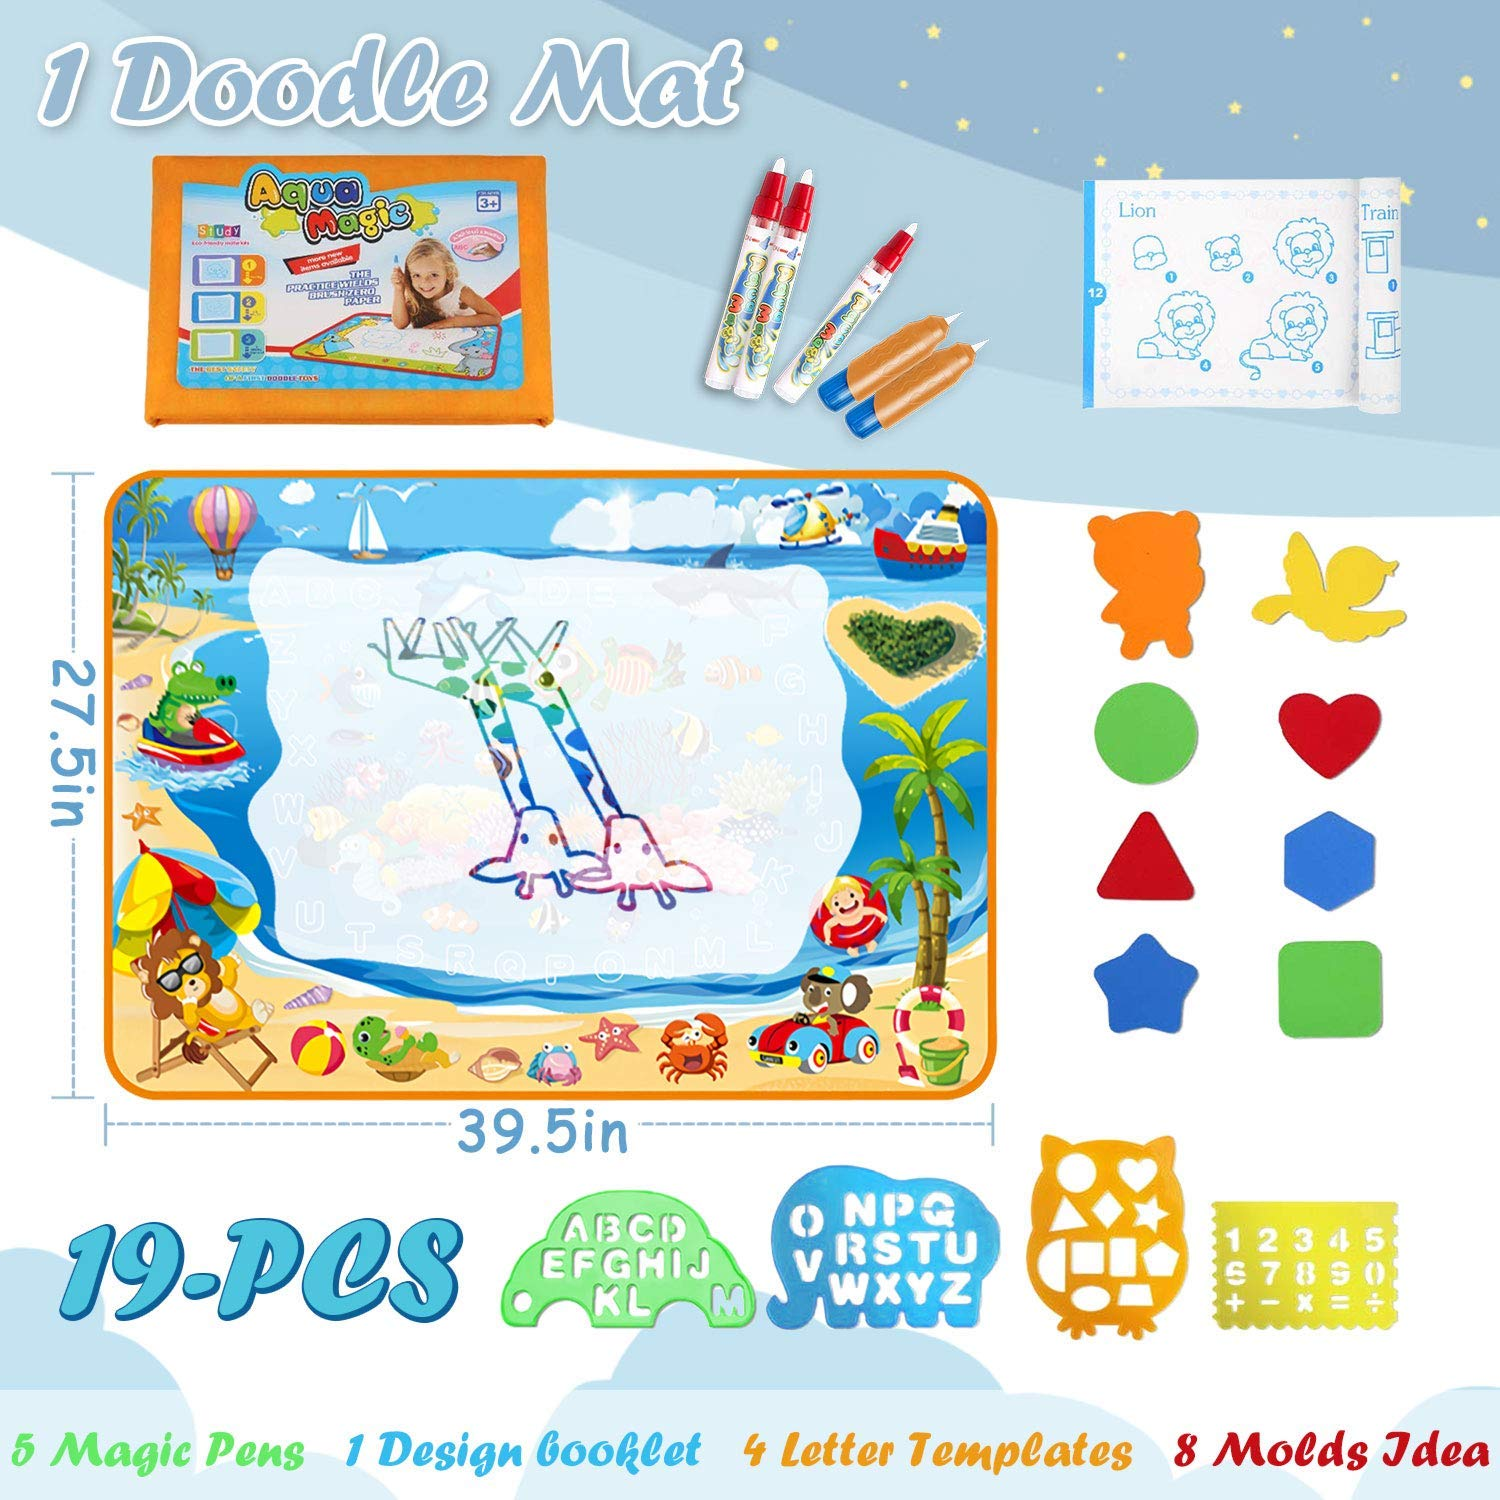 Aqua Doodle Mat Gift Set Extra Large Size 38.4X29.5 Reusable Multi-Color Water Coloring Drawing Toy with 3 Water pens and Painting Tools for Kids to Enjoy Together Markbetter